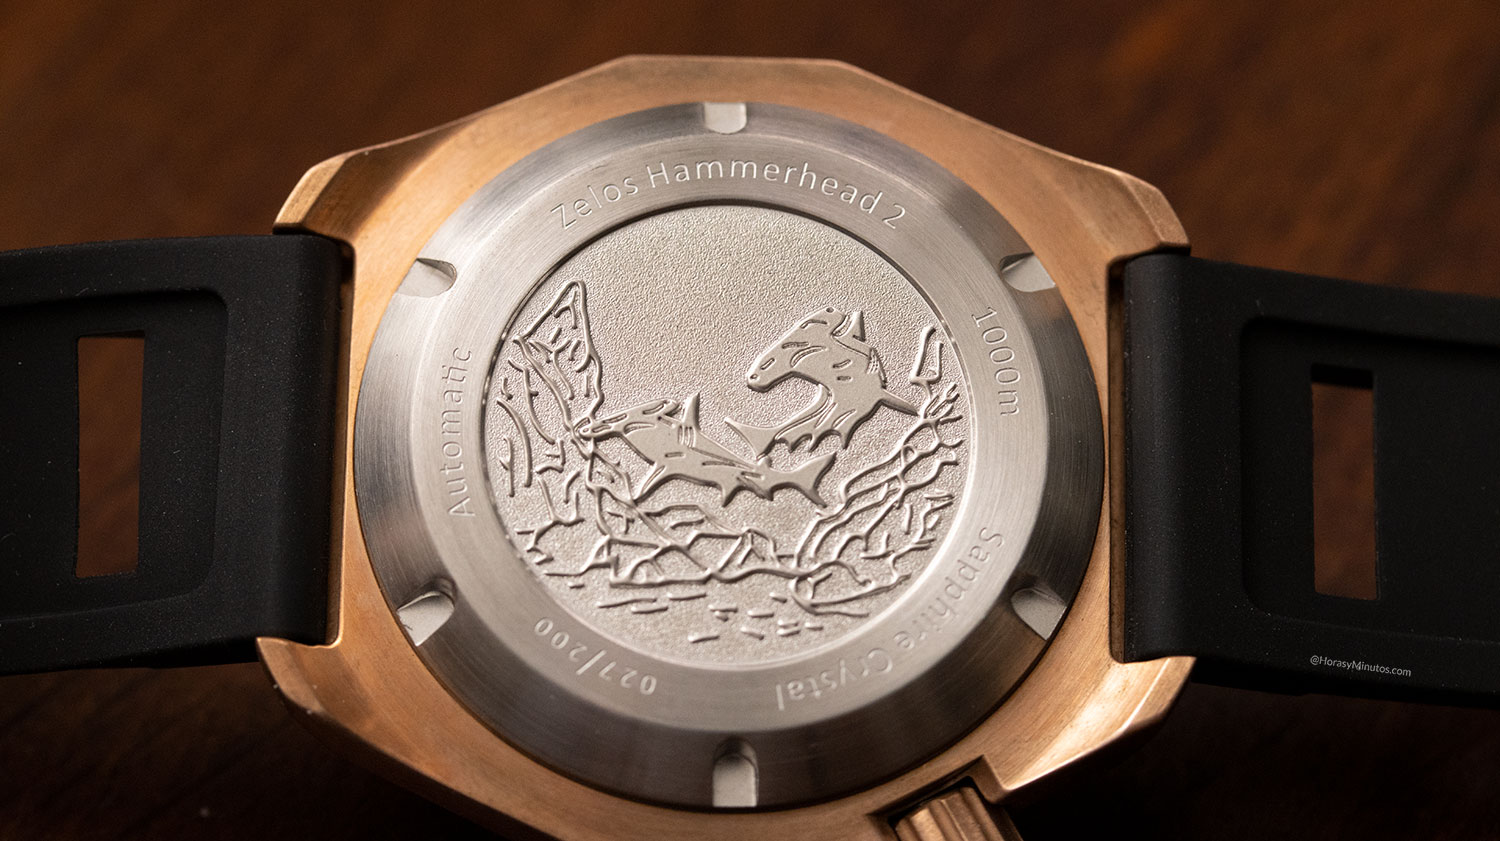 Reverso del Super-LumiNova en el Zelos Watches Hammerhead 1000 M Bronze Midnight Blue